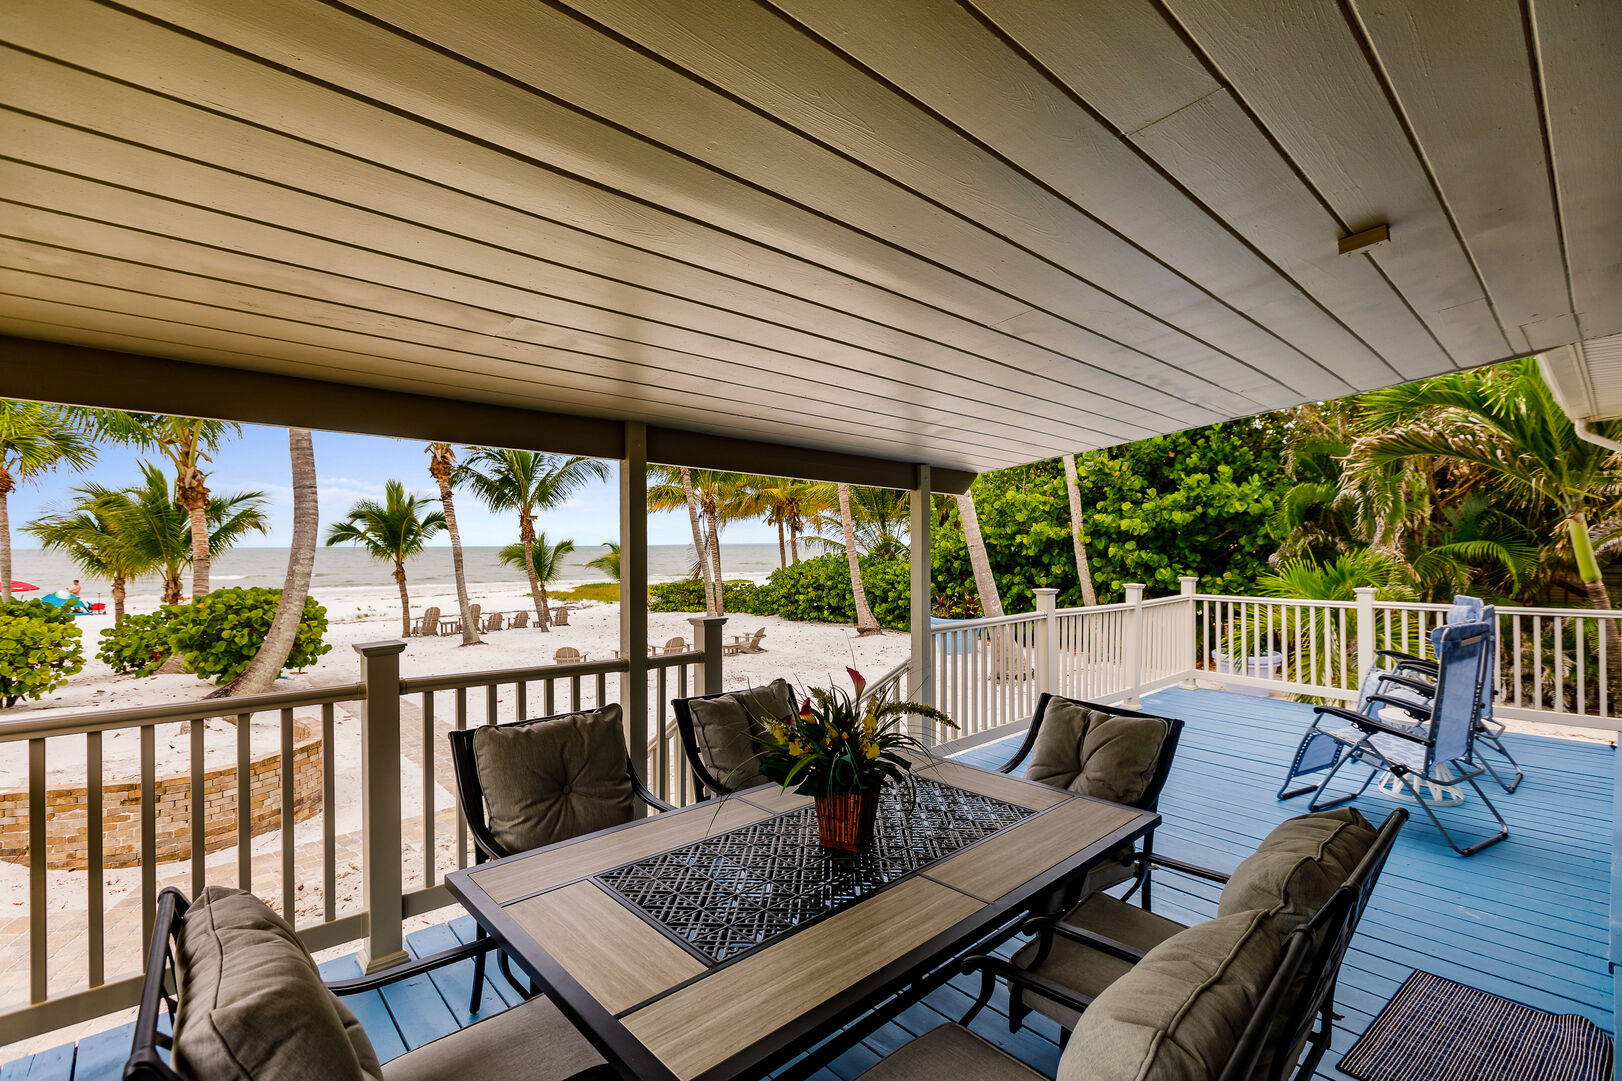 Covered Outdoor Deck and View of Beach Private Beach House Rental in Florida